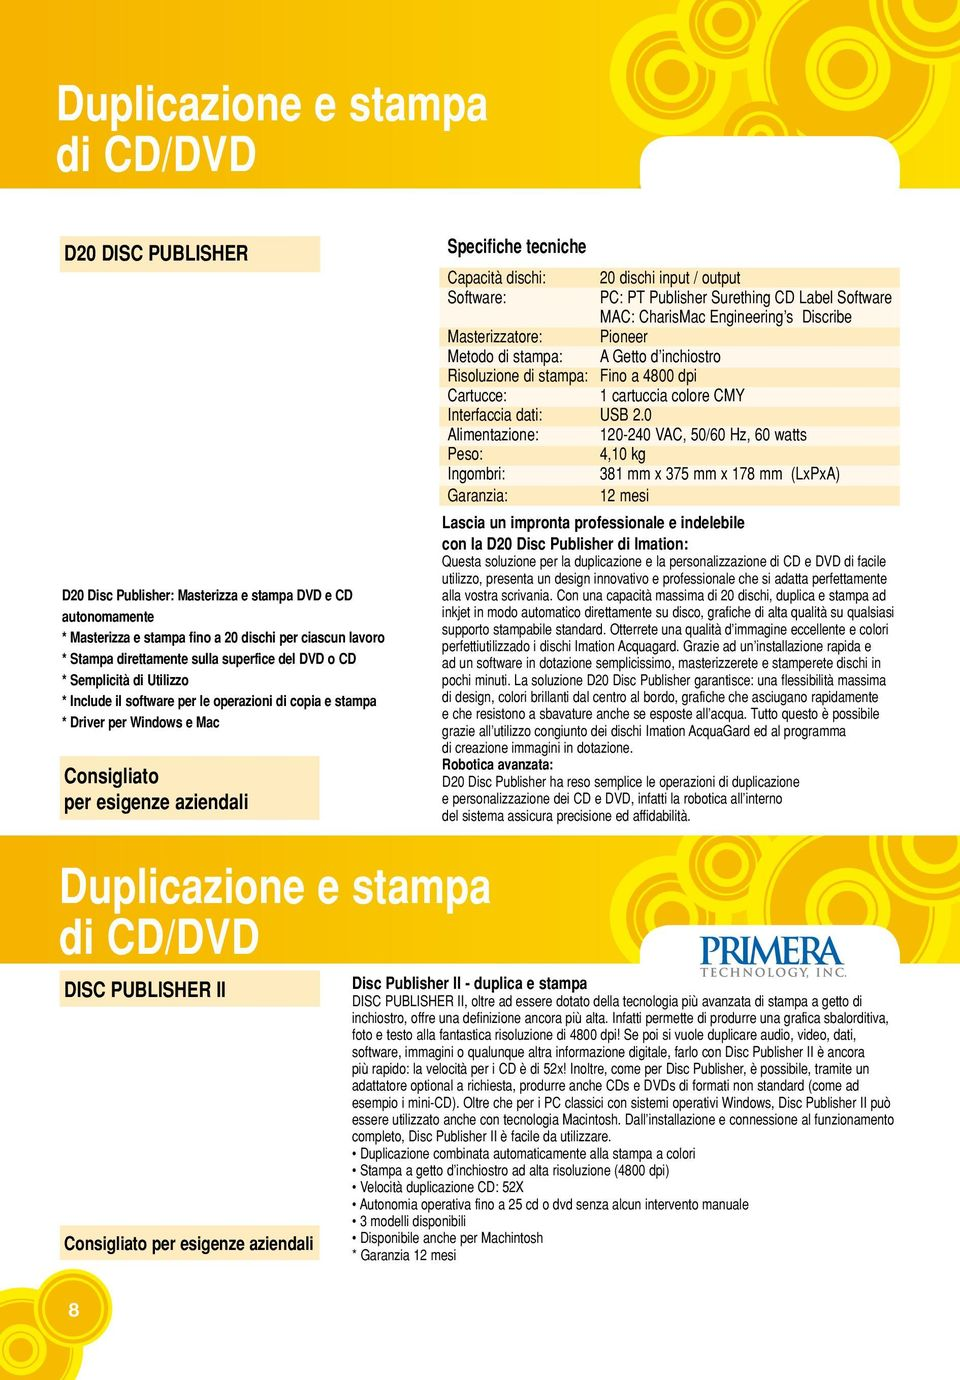 dischi: 20 dischi input / output Software: PC: PT Publisher Surething CD Label Software MAC: CharisMac Engineering s Discribe Masterizzatore: Pioneer Metodo di stampa: A Getto d inchiostro